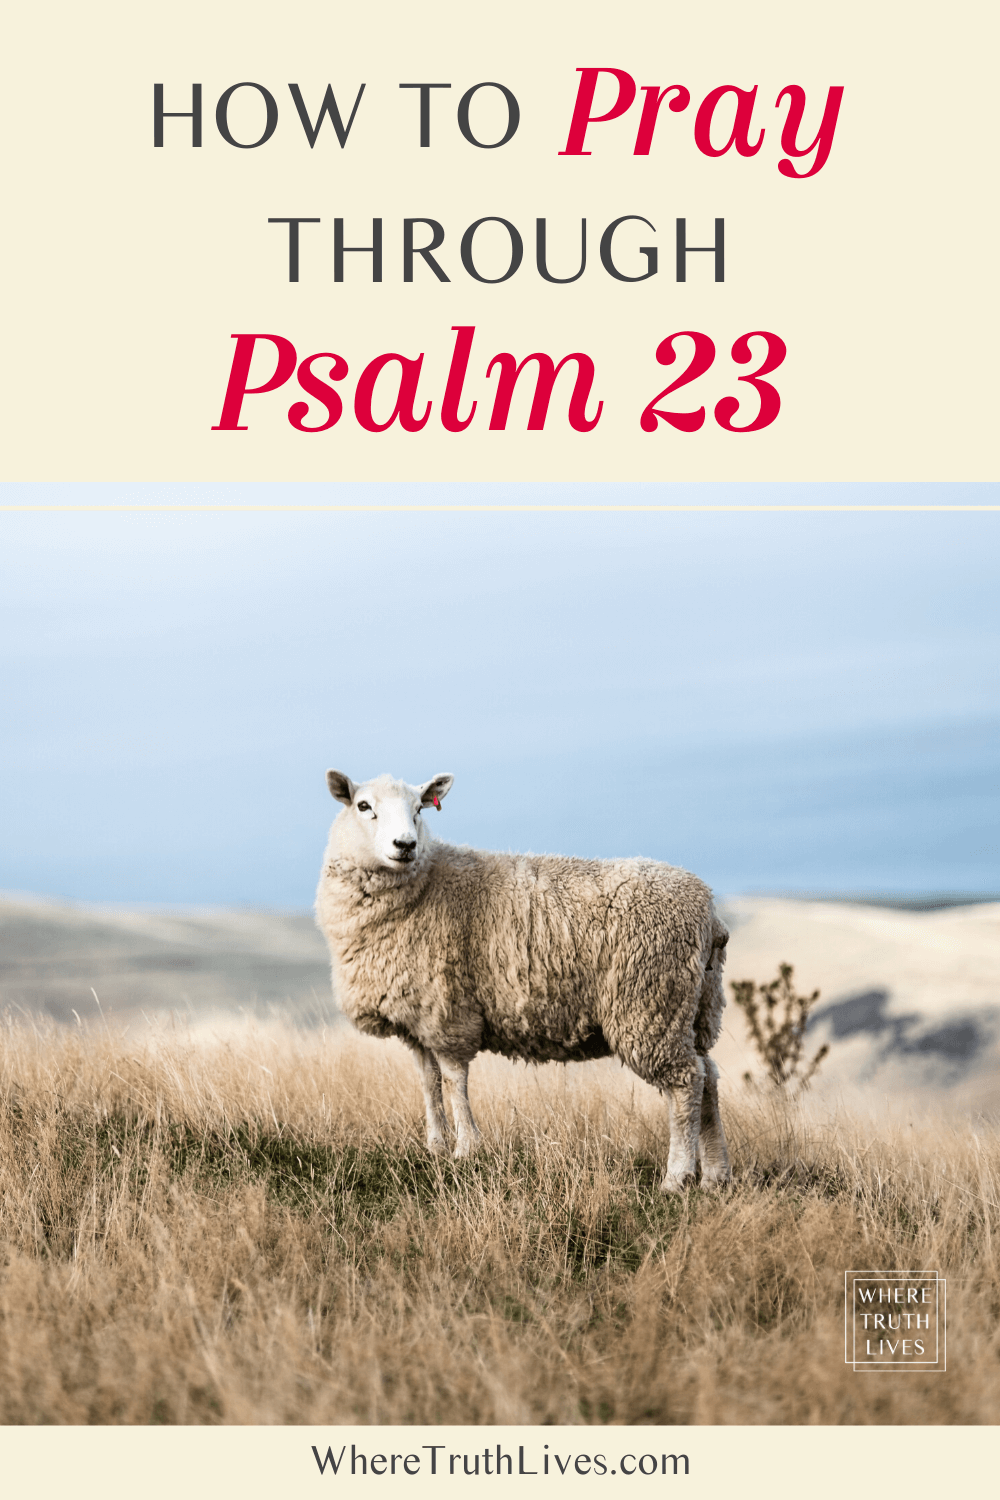 How To Pray Through Psalm 23